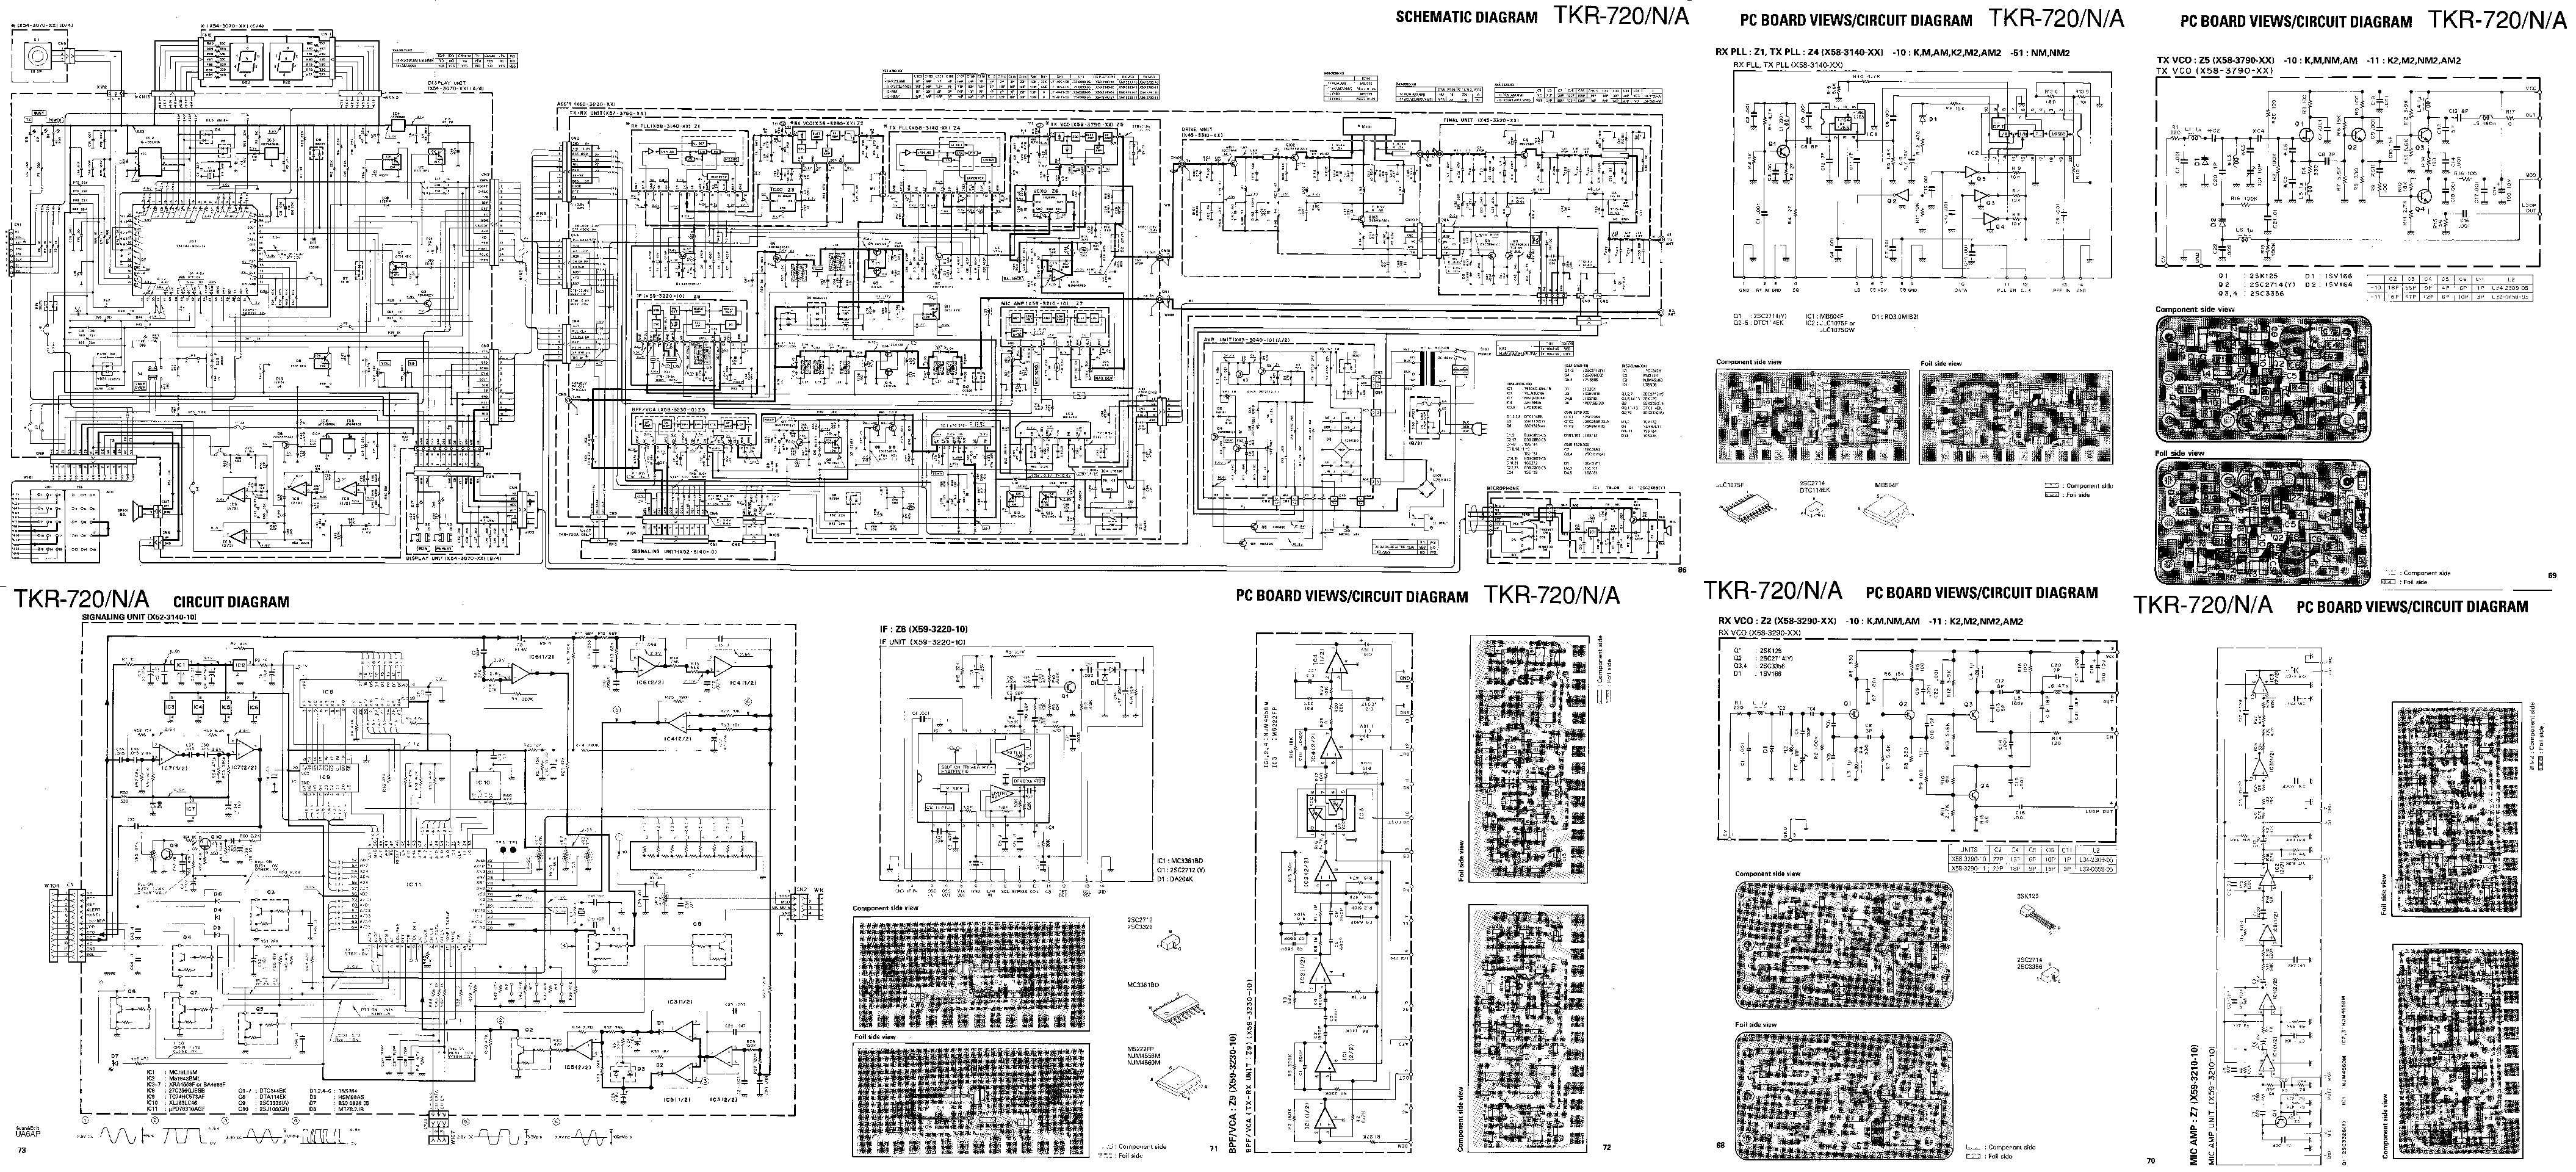 50s Wiring Diagram Free Download Schematic Kenwood Tkr 720 Service Manual Schematics Eeprom Repair 1st Page